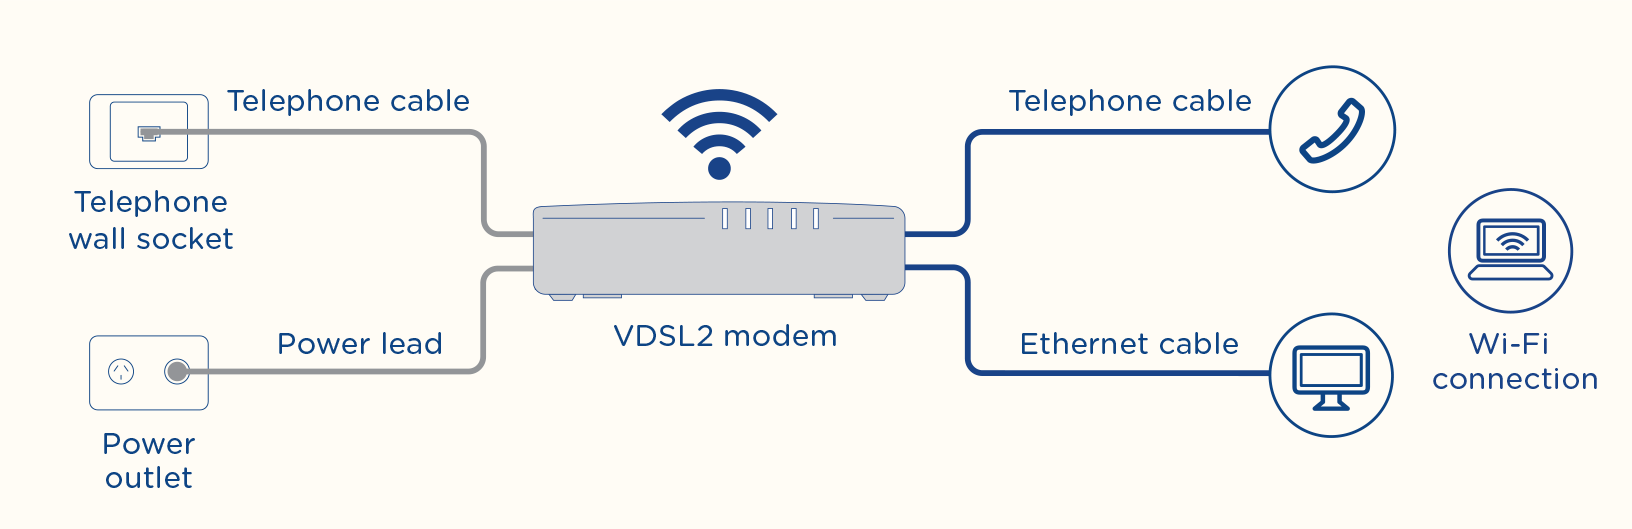 telstra nbn router instructions pdf